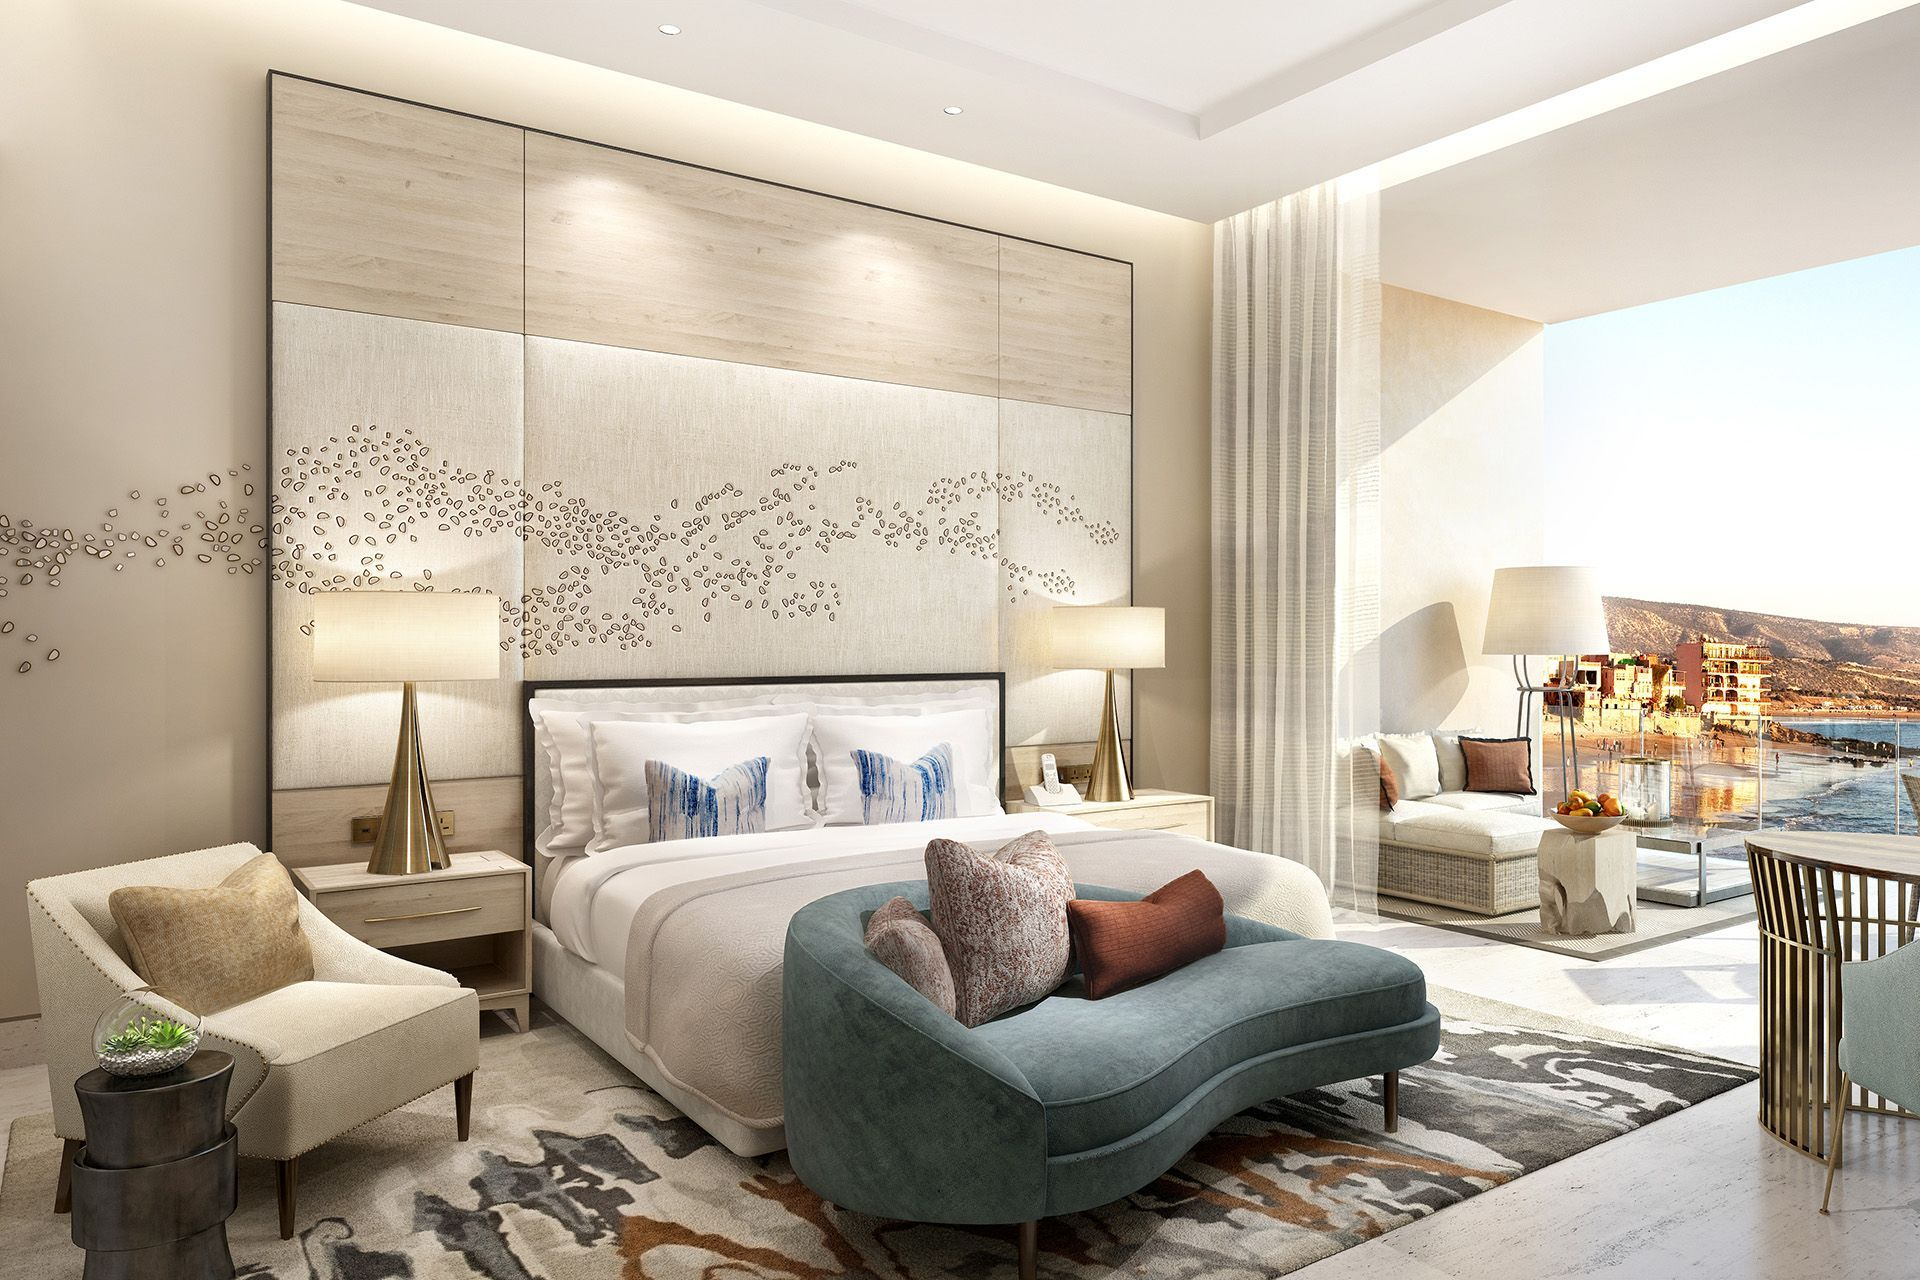 Four seasons taghazout interior designers wimberly for Bed decoration design